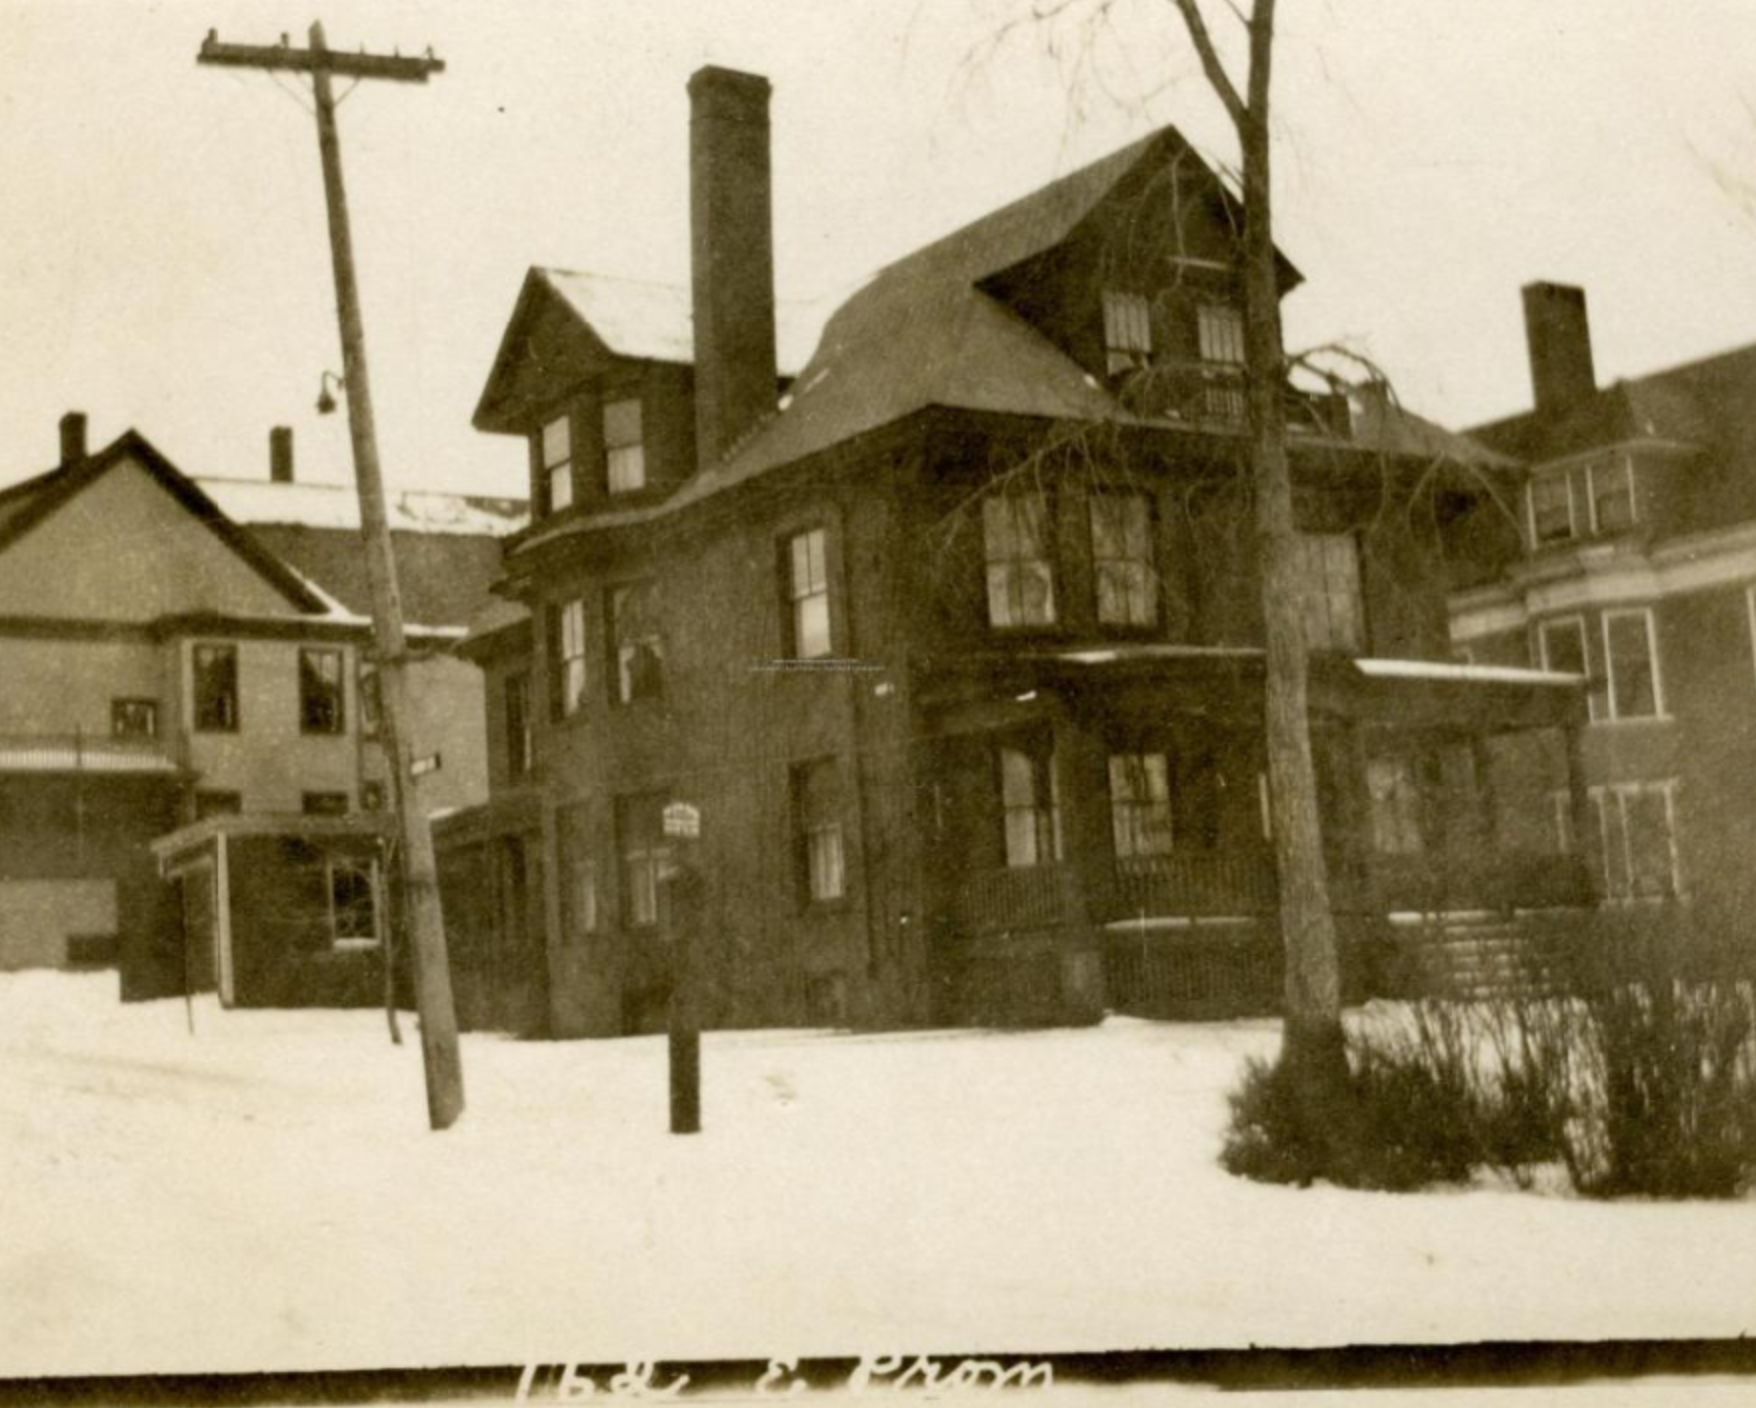 The Sacknoff estate during the winter of 1924.